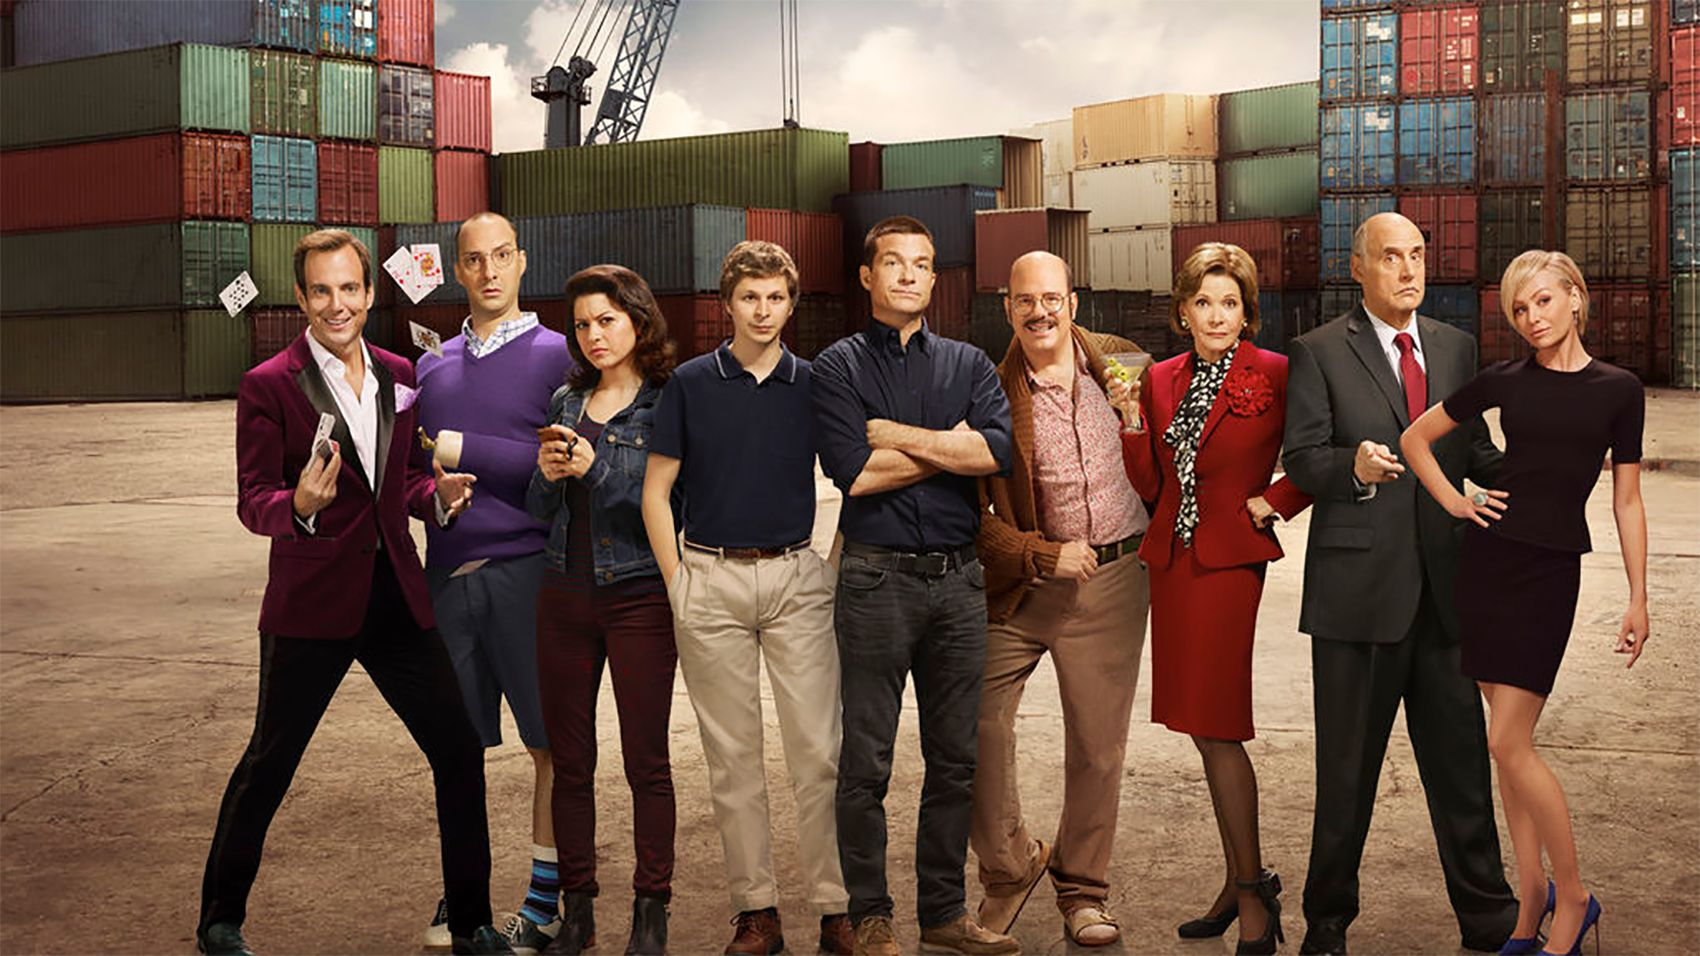 Myers-Briggs® Personality Types Of Arrested Development